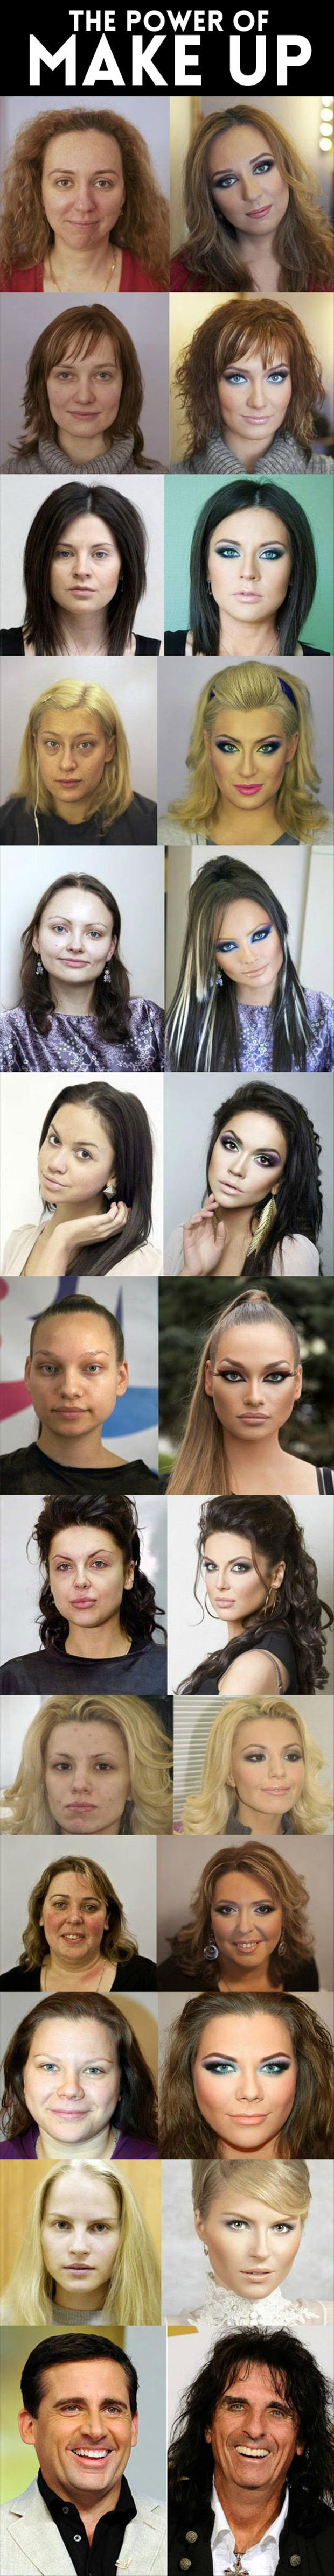 the power of makeup 1